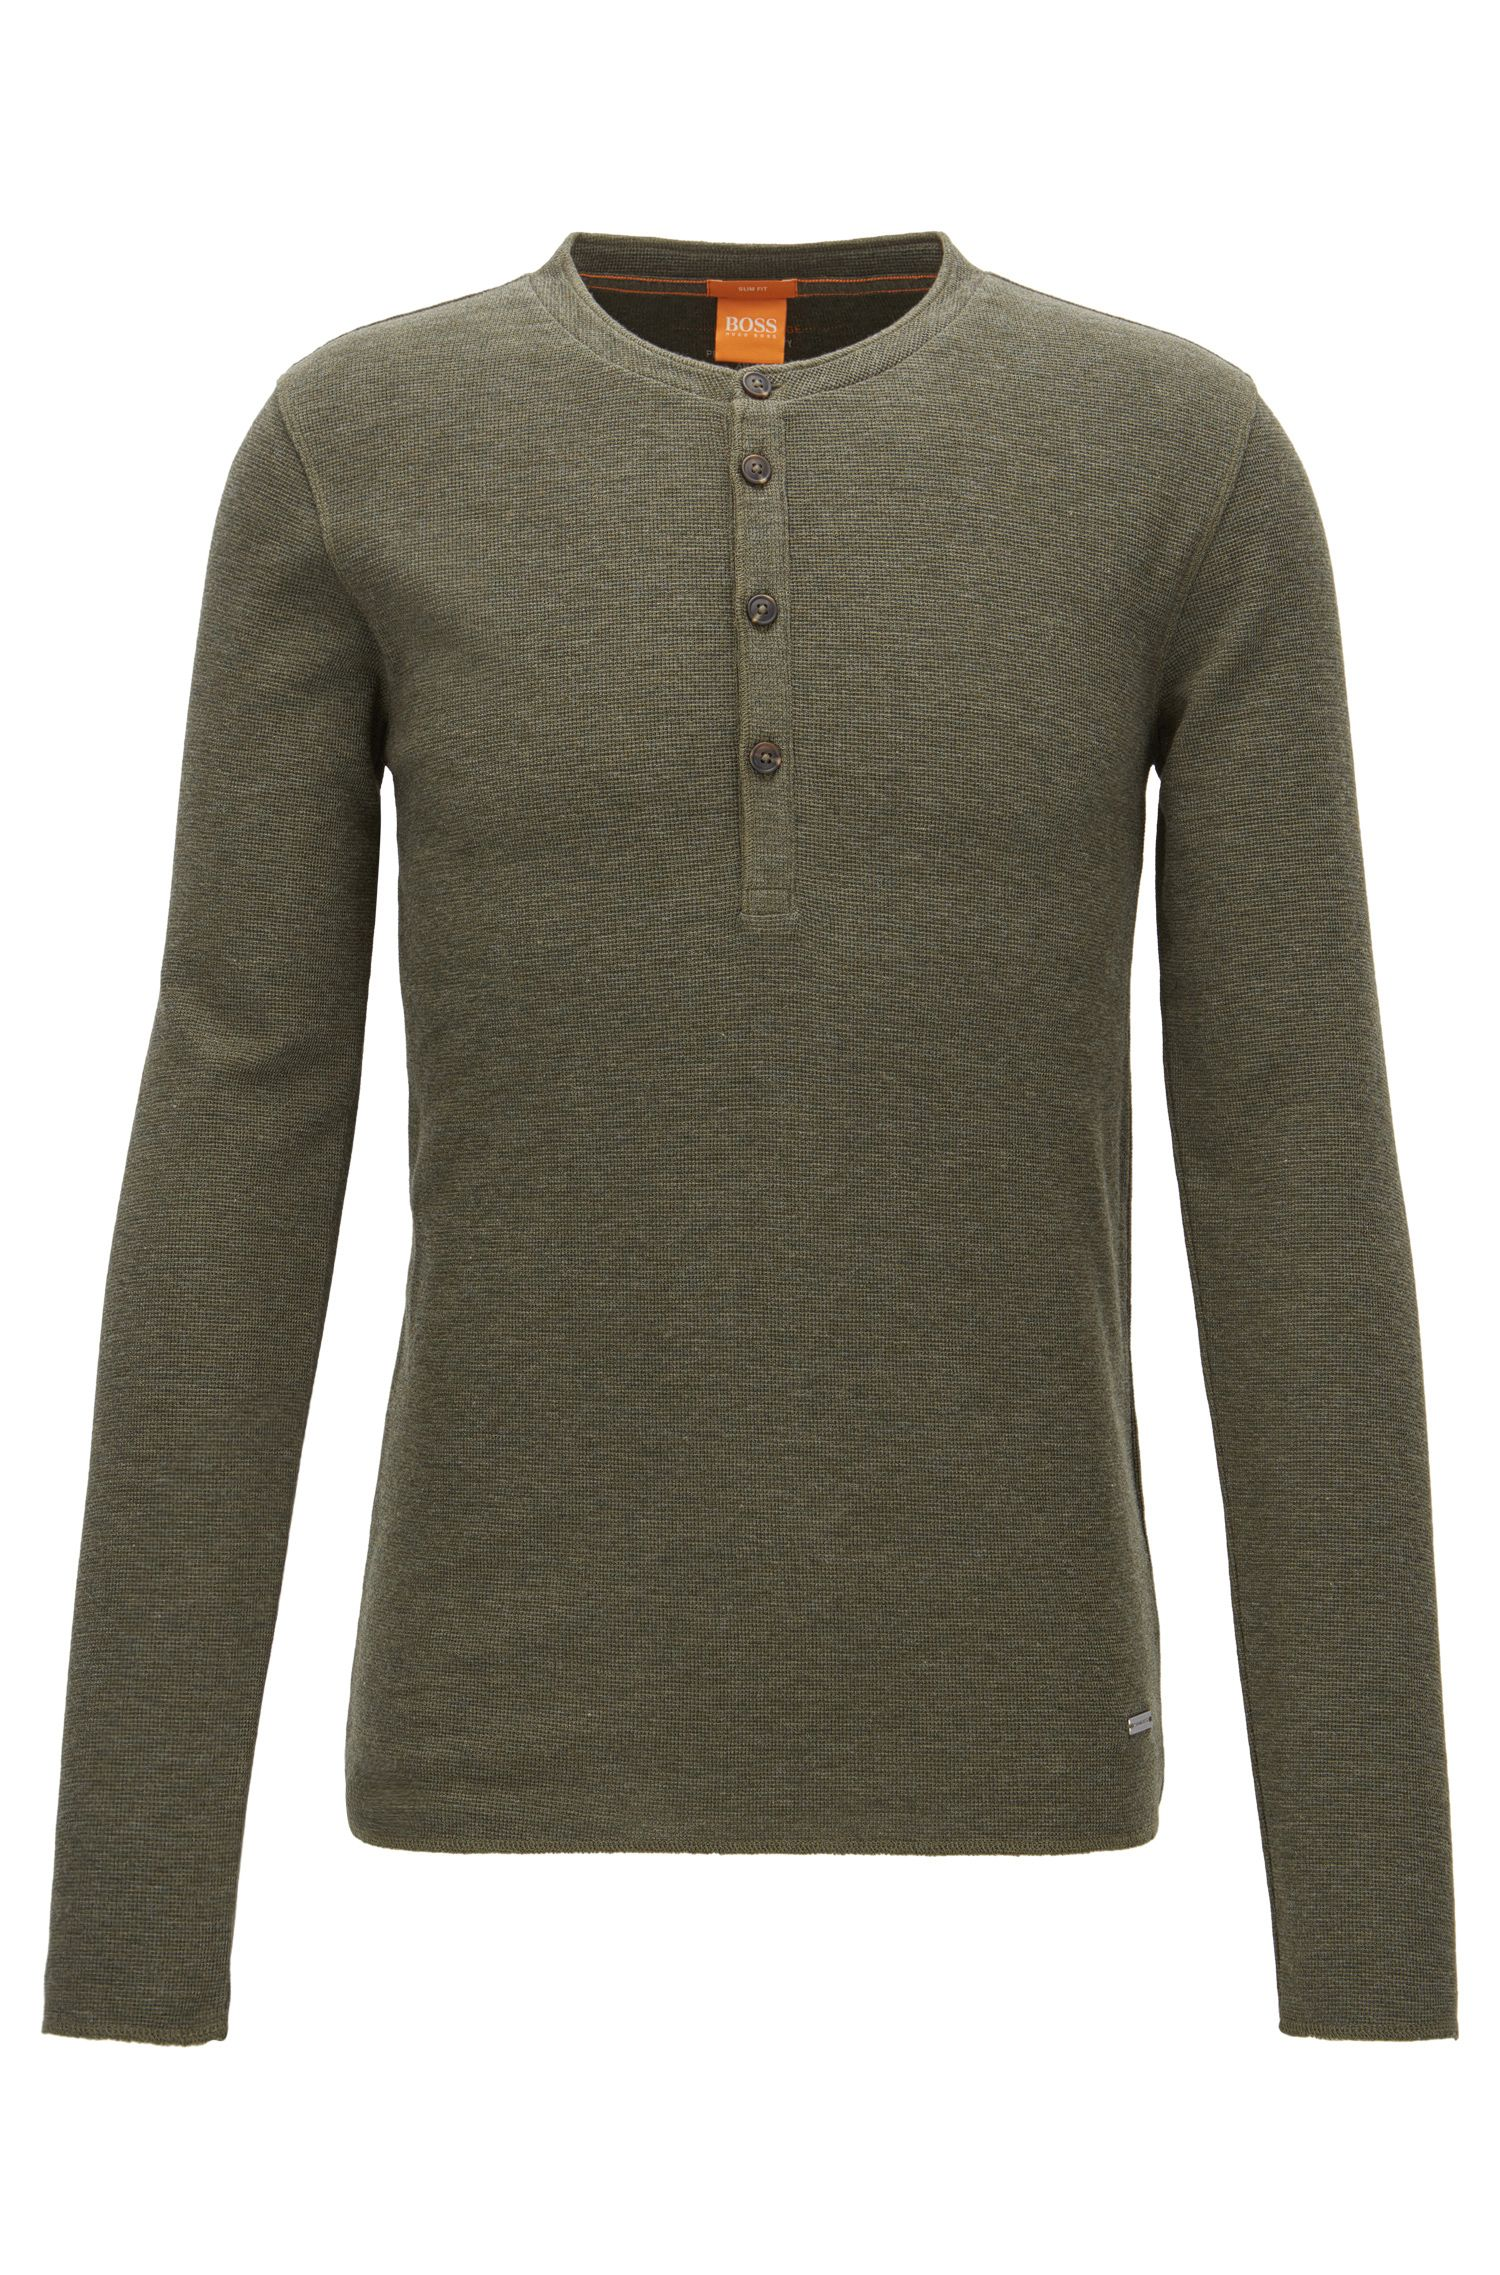 'Topsider' | Cotton Henley Shirt